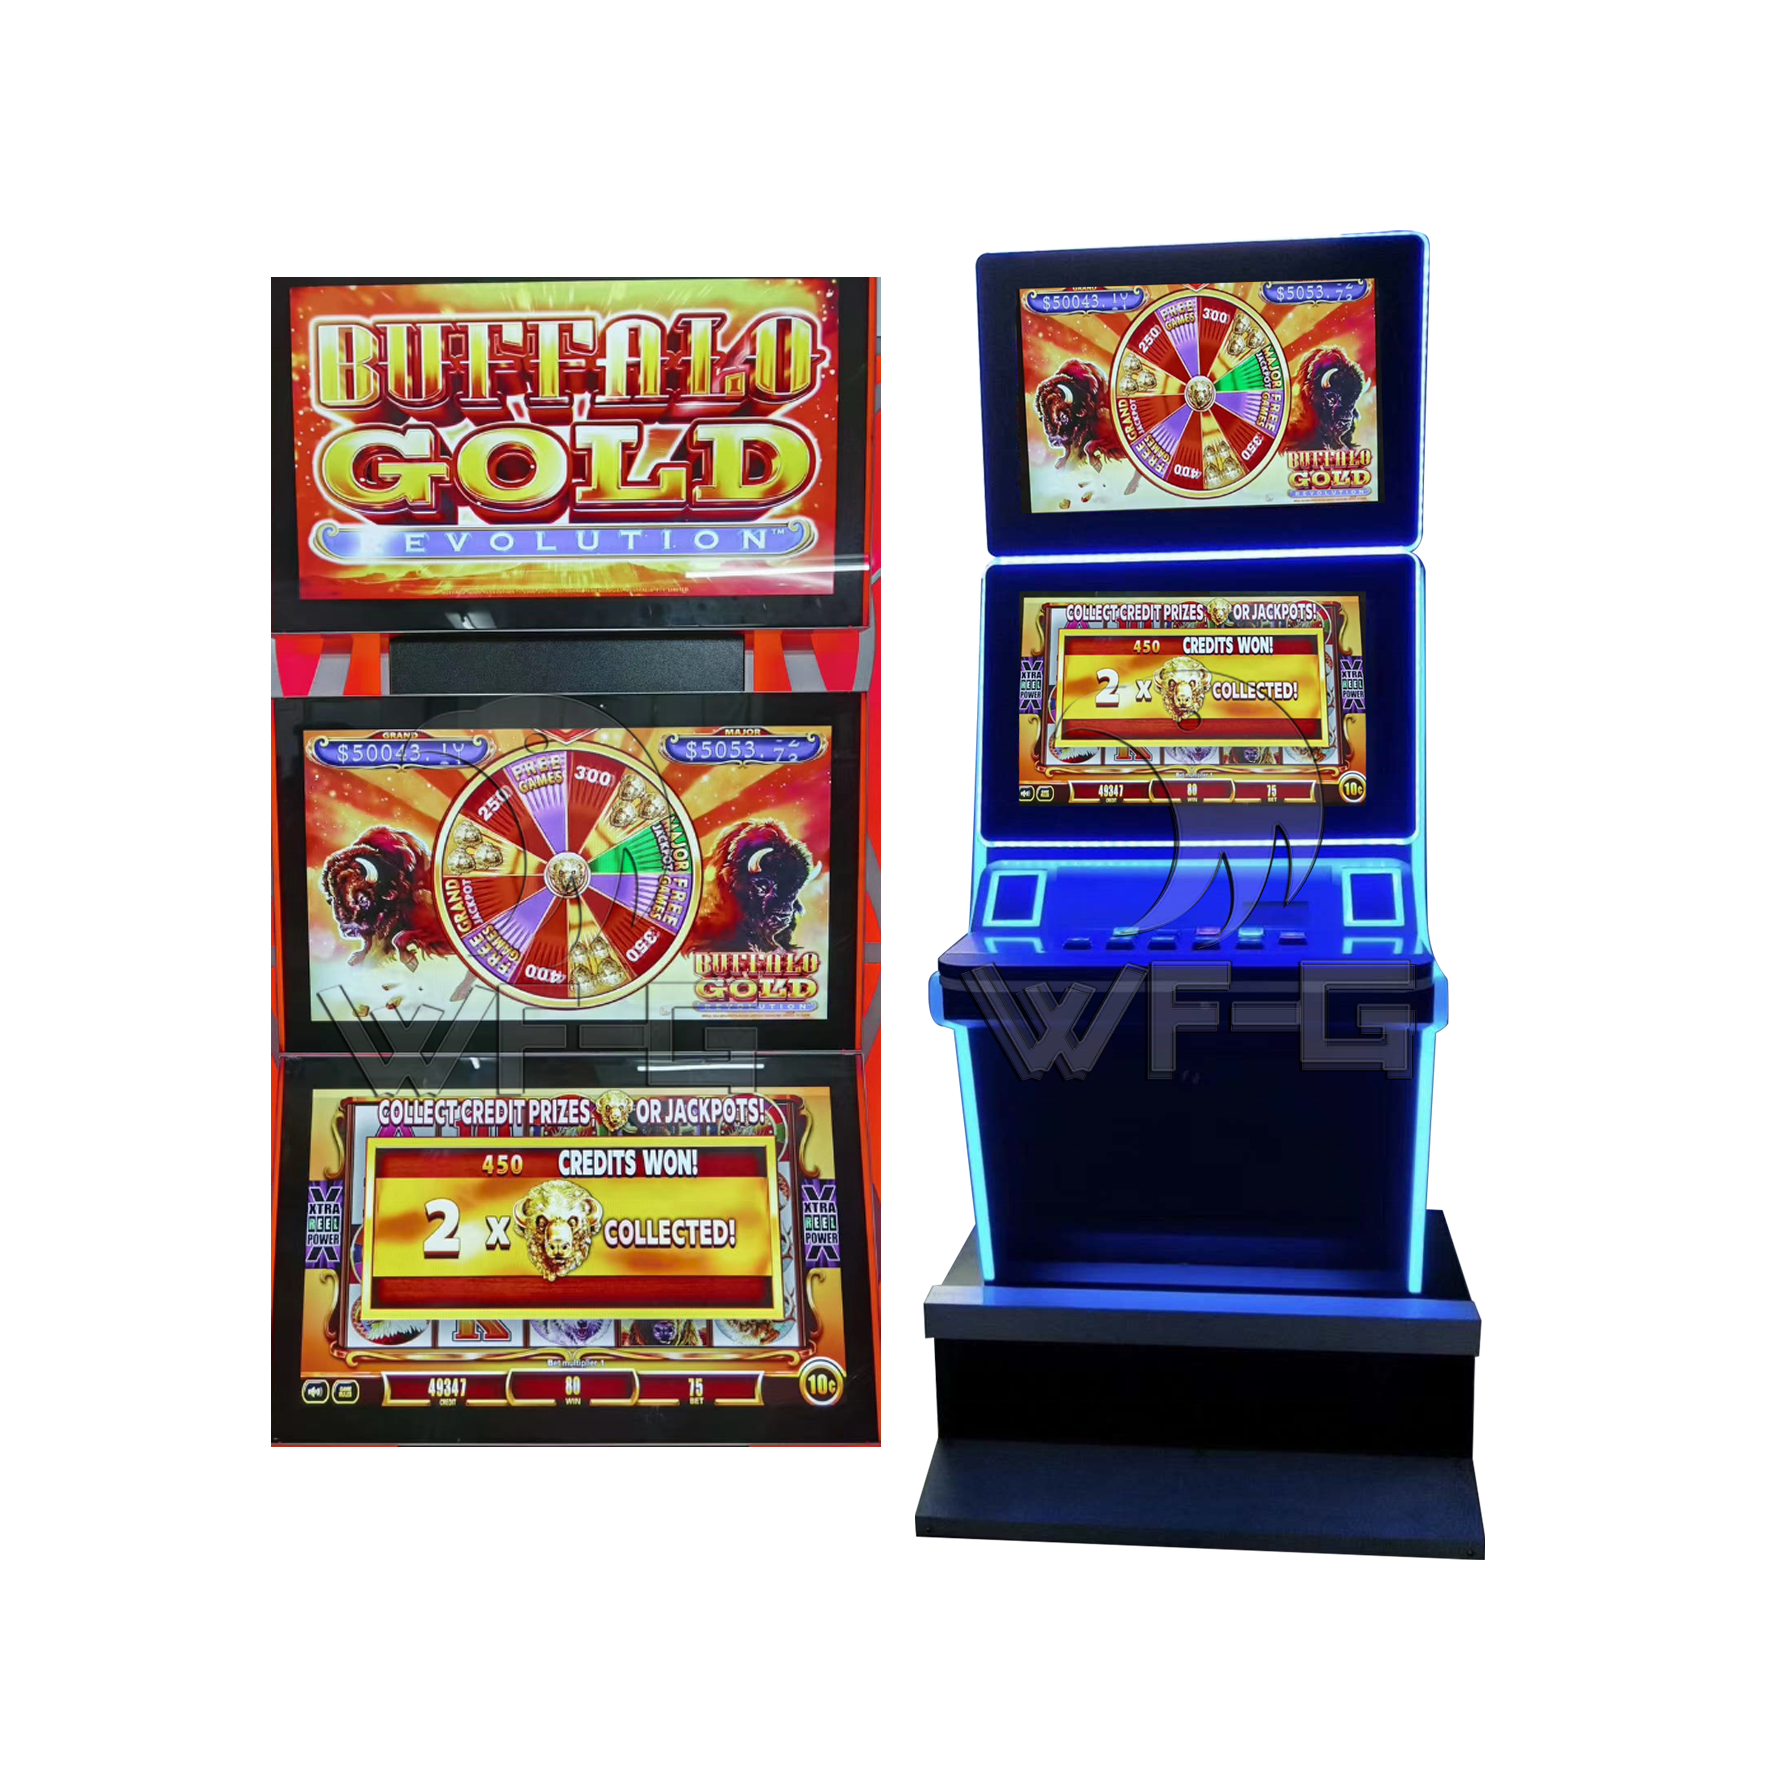 Buffalo Gold Game Mesin Slot Layar Sentuh Video Arkade Ganda dengan Akseptor Tagihan